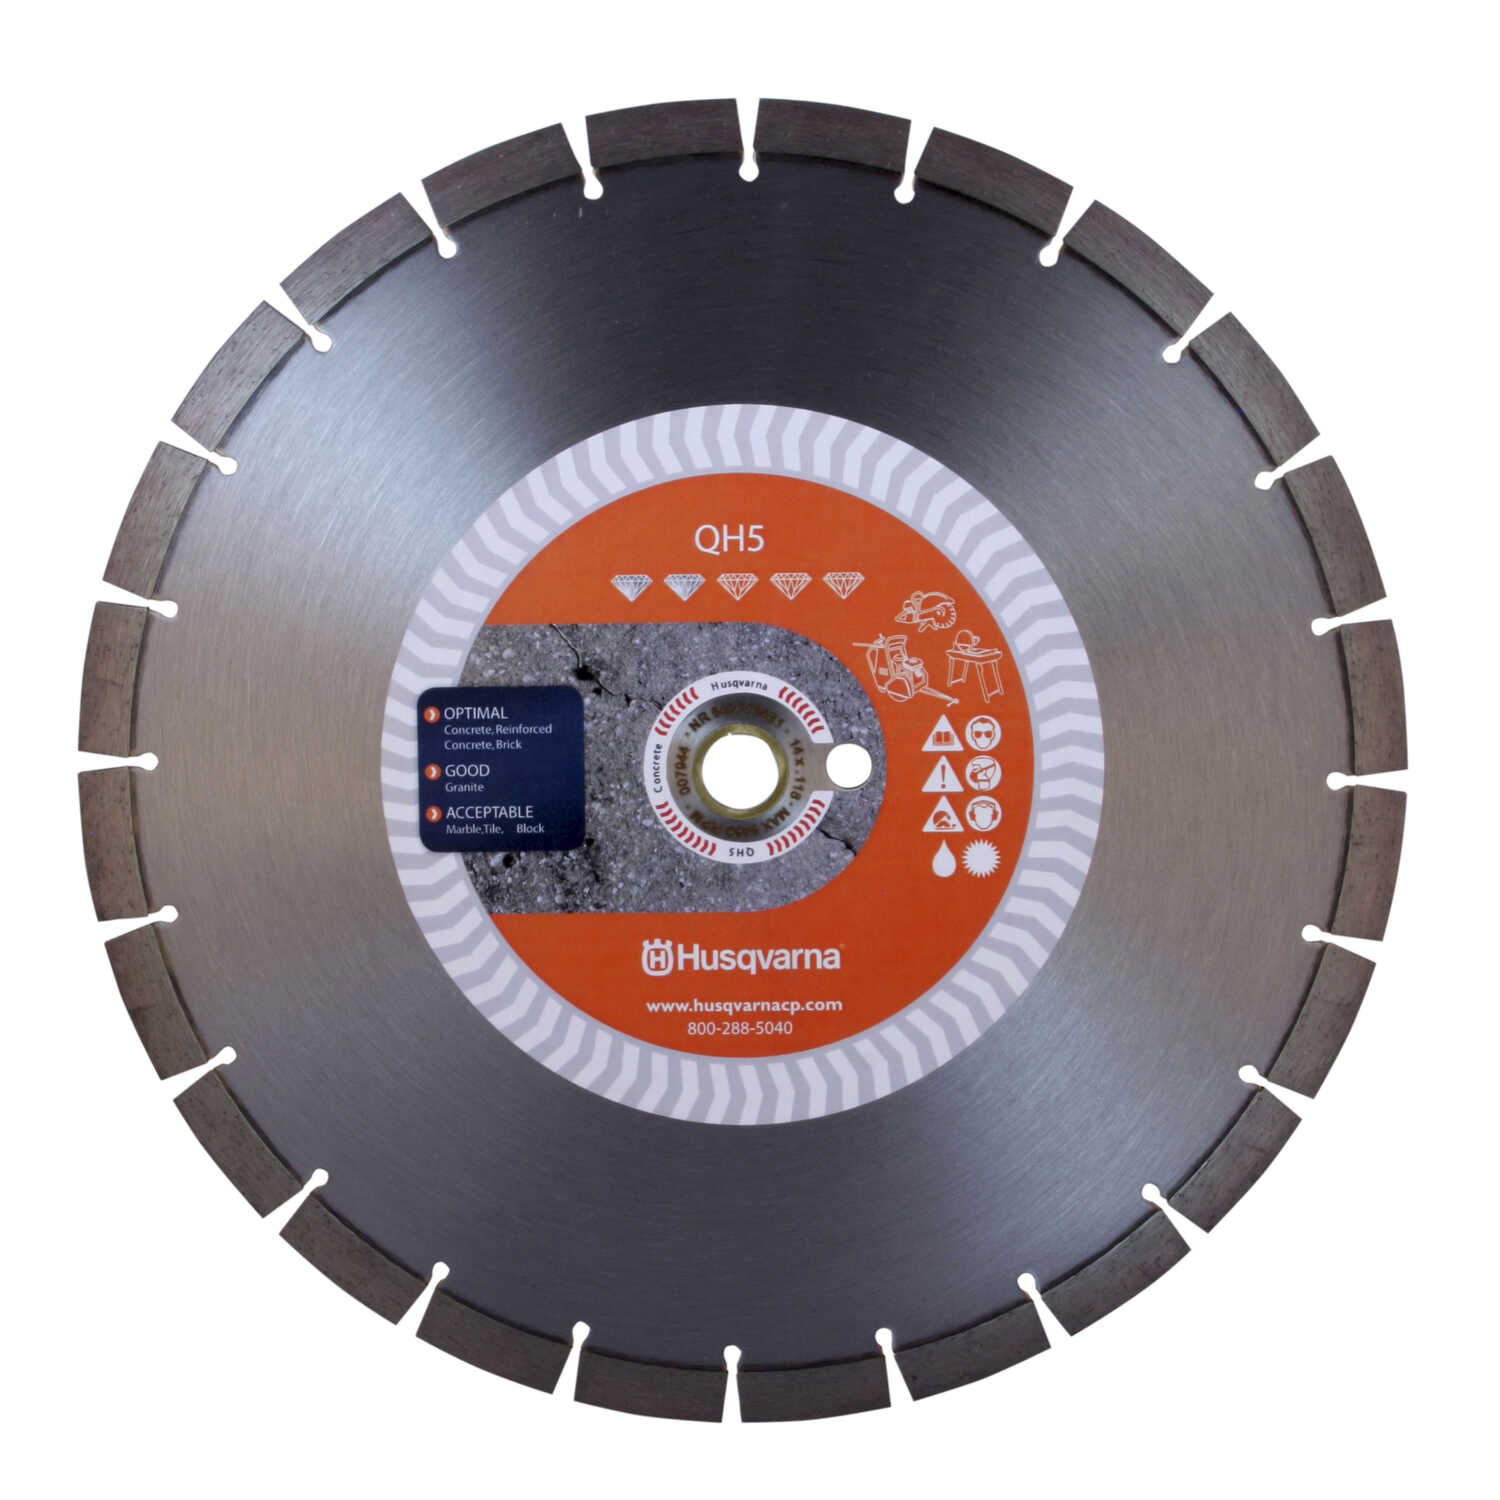 Husqvarna  12  Diamond  QH5  Segmented Rim Diamond Saw Blade  0.118 in. thick  1 in./20 mm  24 teeth